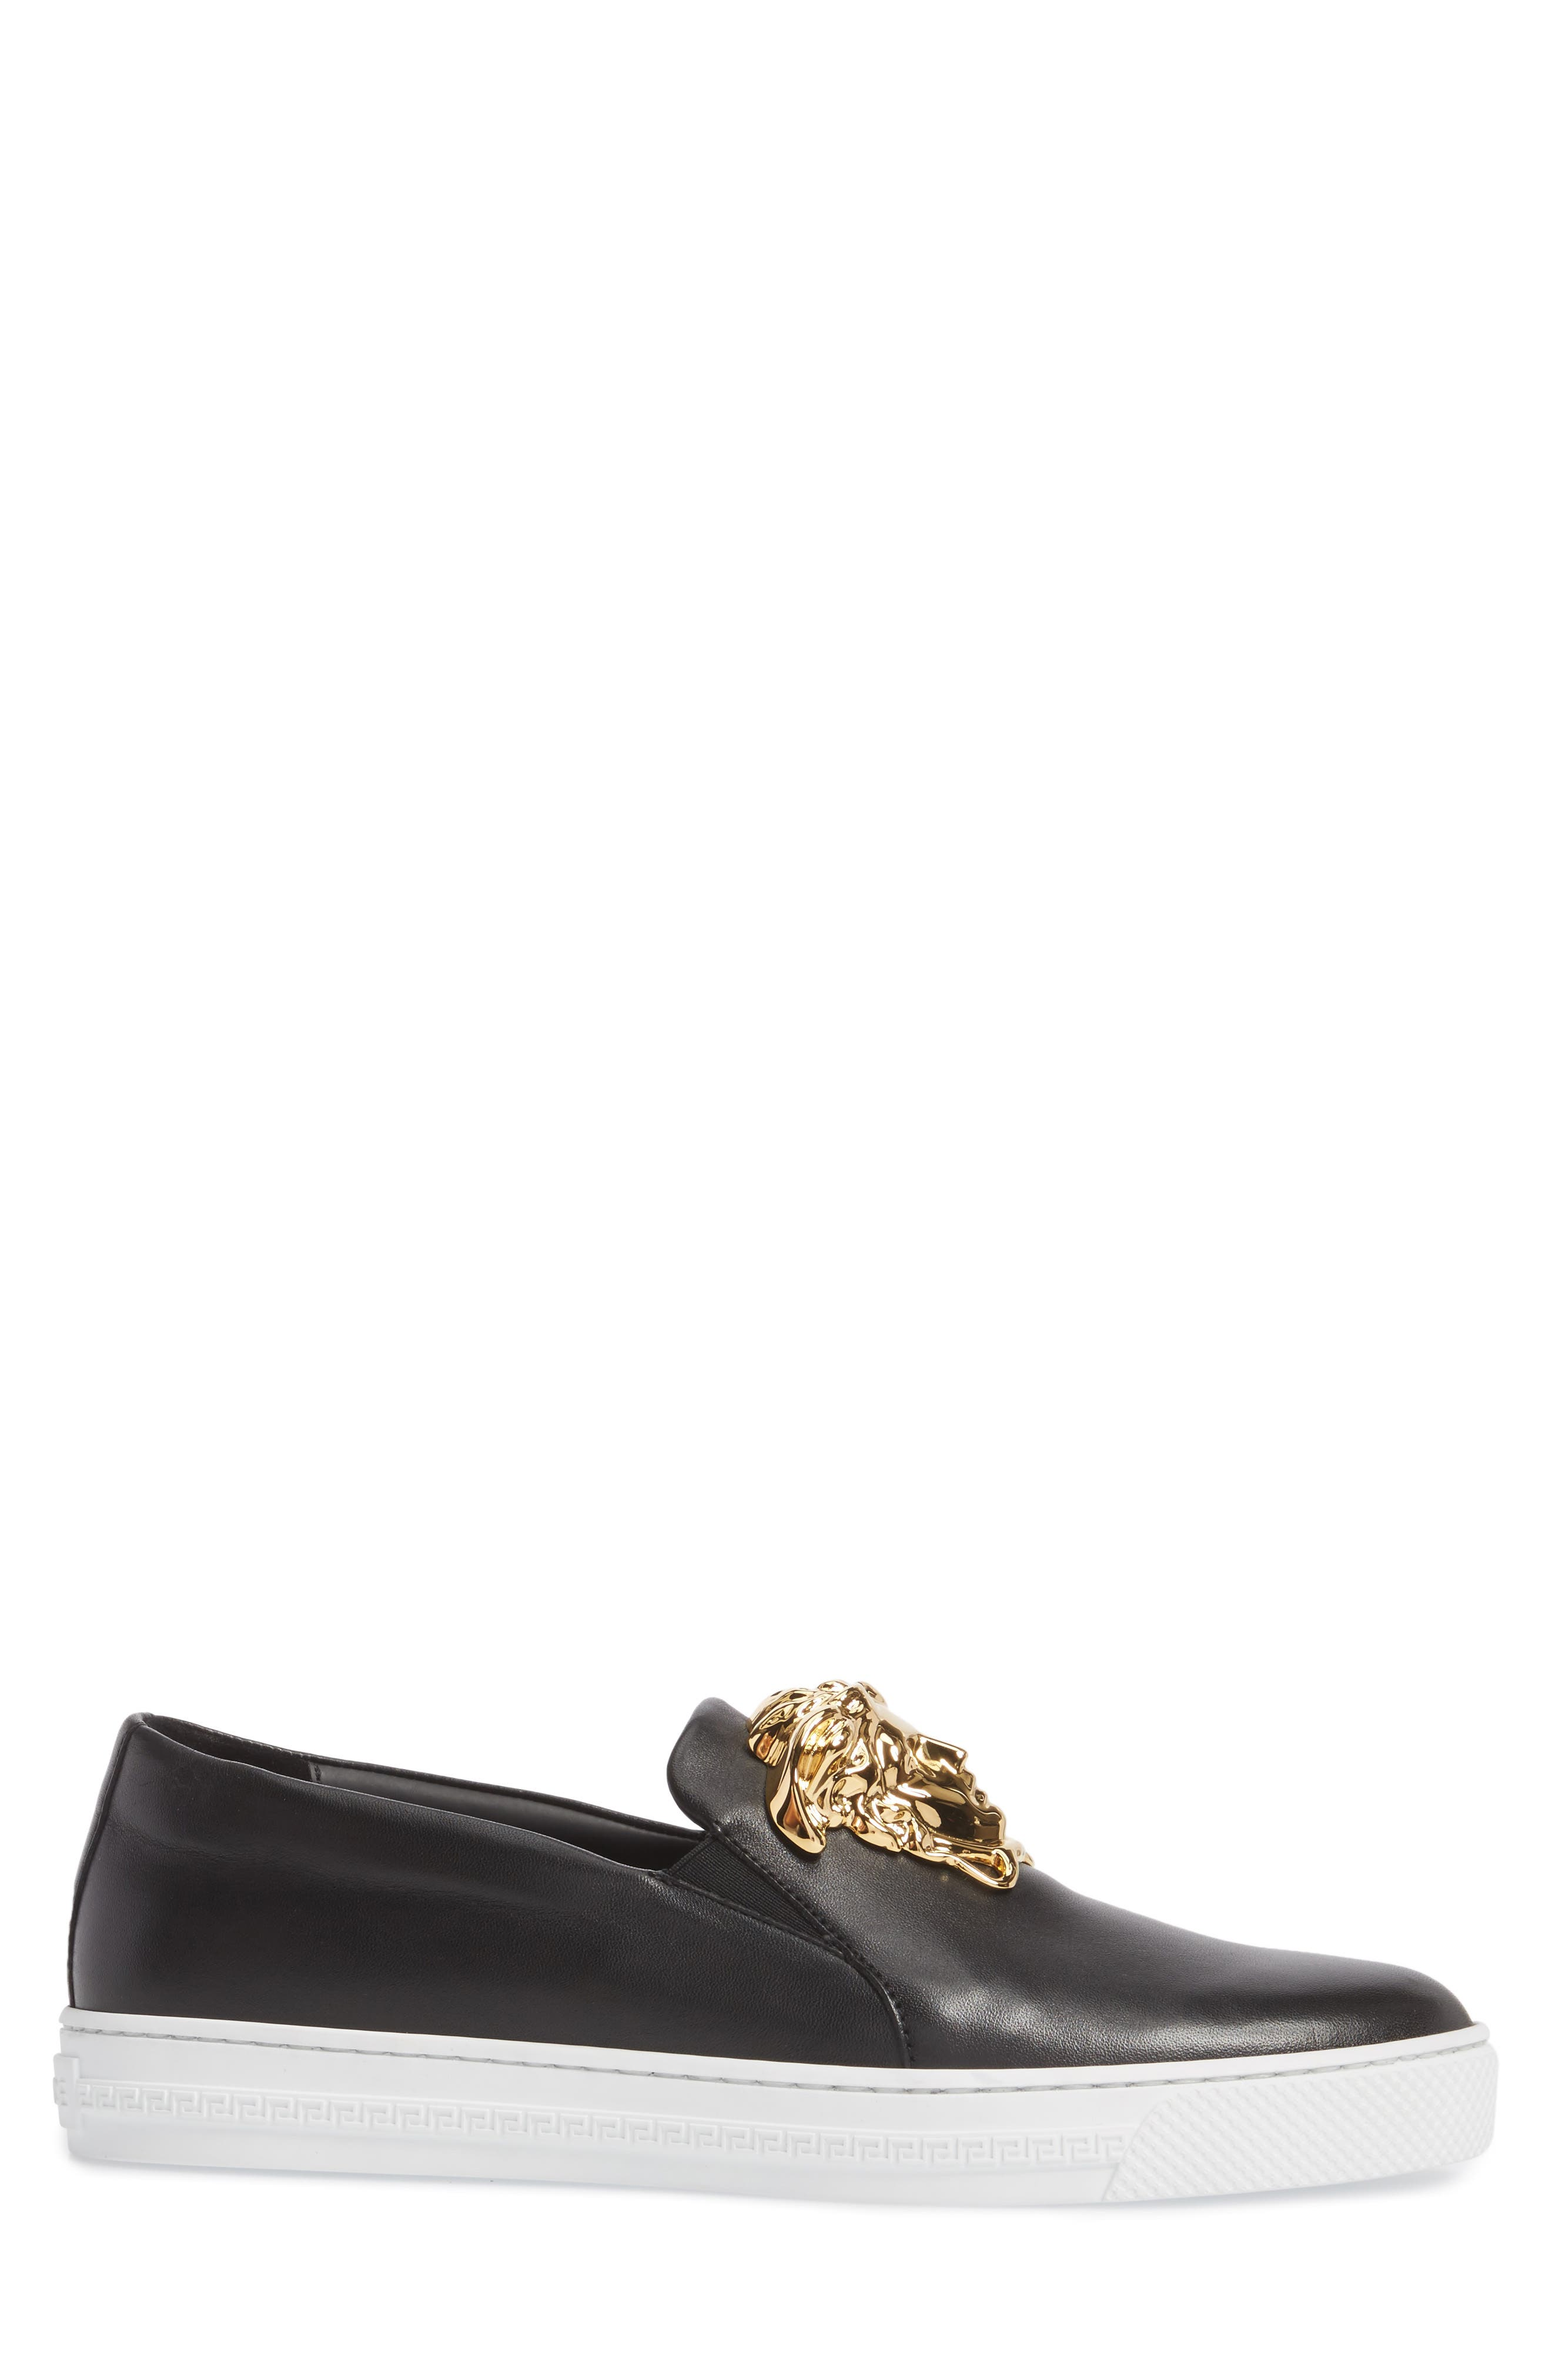 Alternate Image 3  - Versace First Line Iconic Palazzo Slip-On (Men)